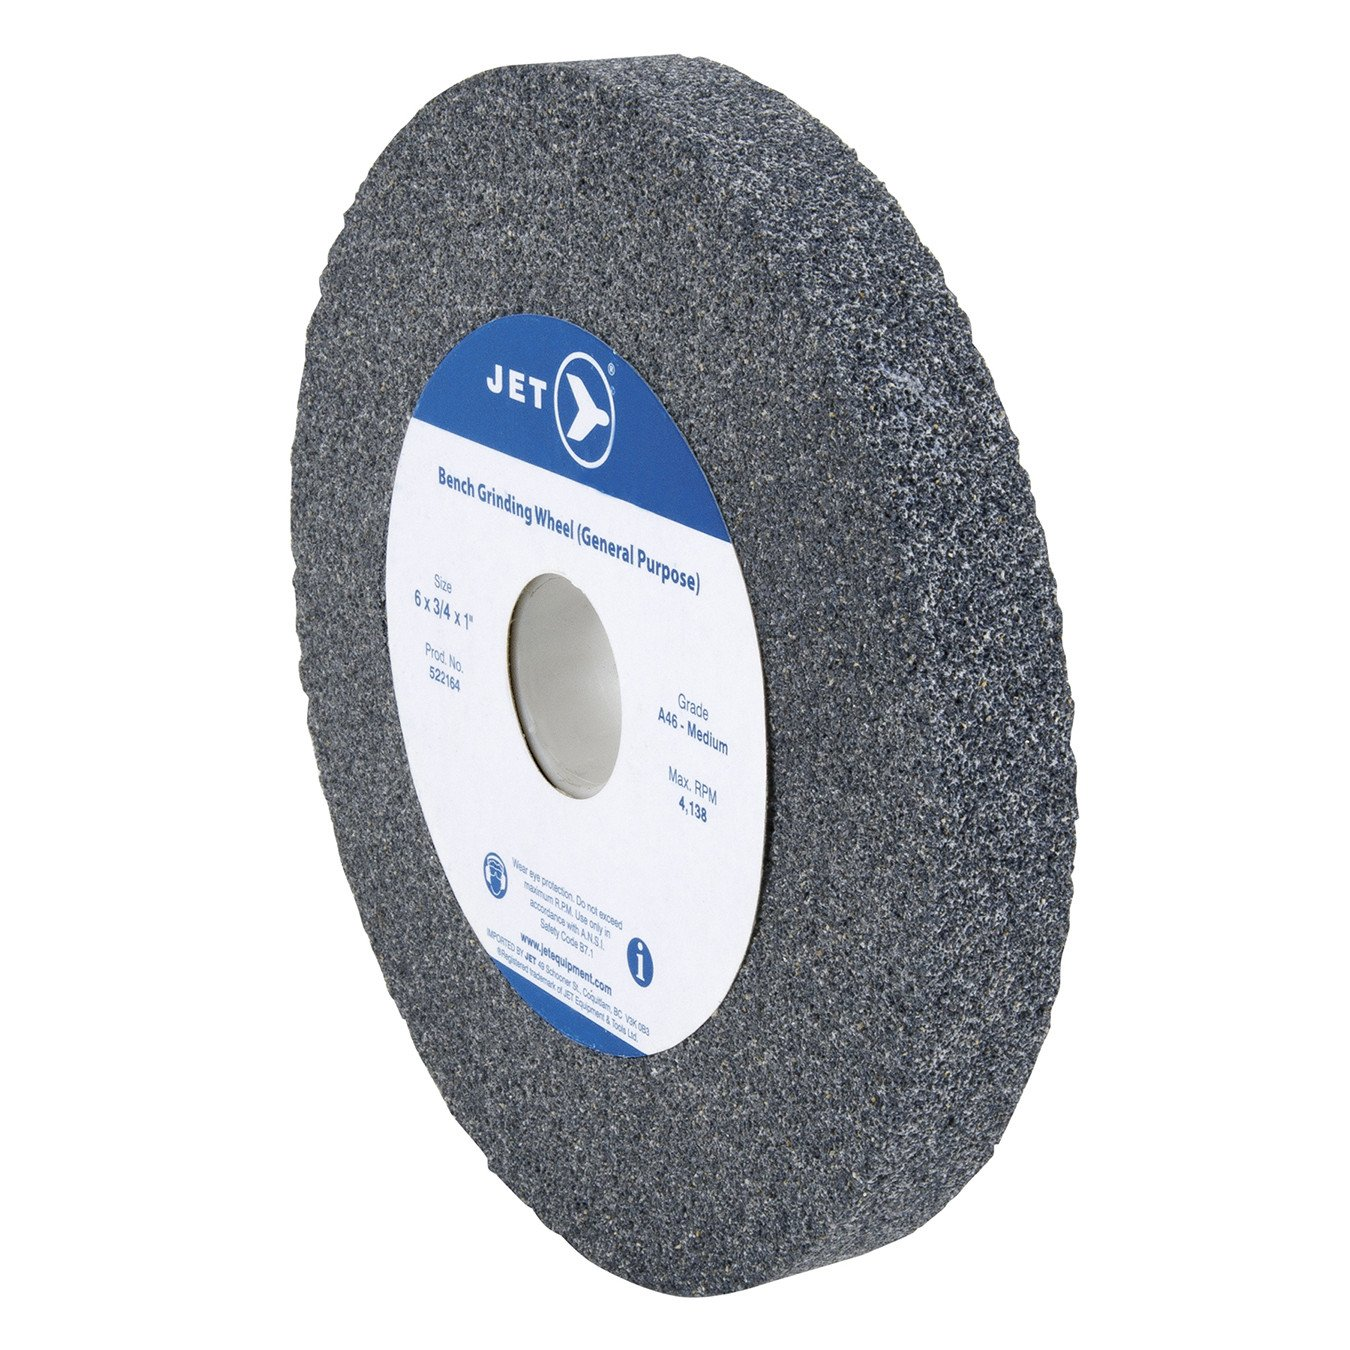 Jet Aluminum Oxide General Purpose Bench Grinding Wheels 8 Inch